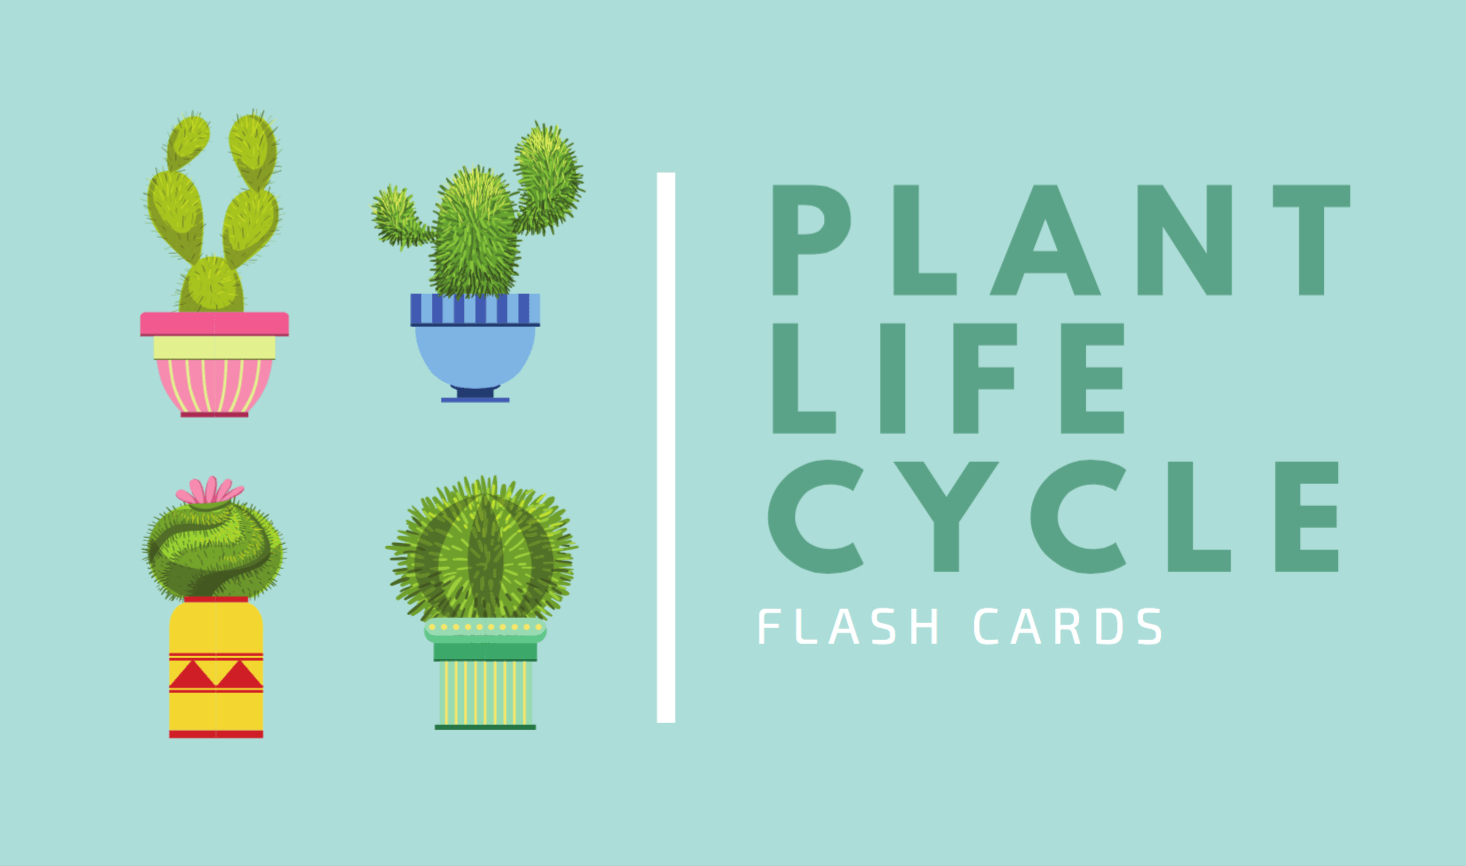 Free Online Flashcard Maker: Design Custom Flashcards - Canva - Free Printable Flash Card Maker Online